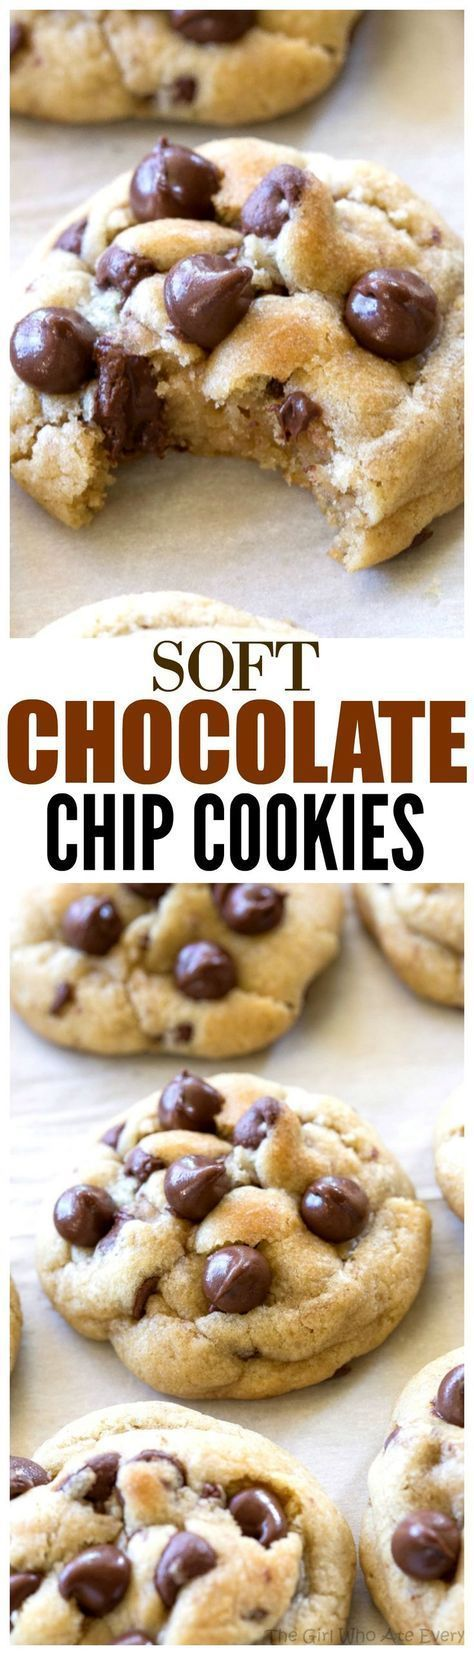 Chocolate Chip Cookies - a tried and true recipe with a secret ingredient to keep them soft!